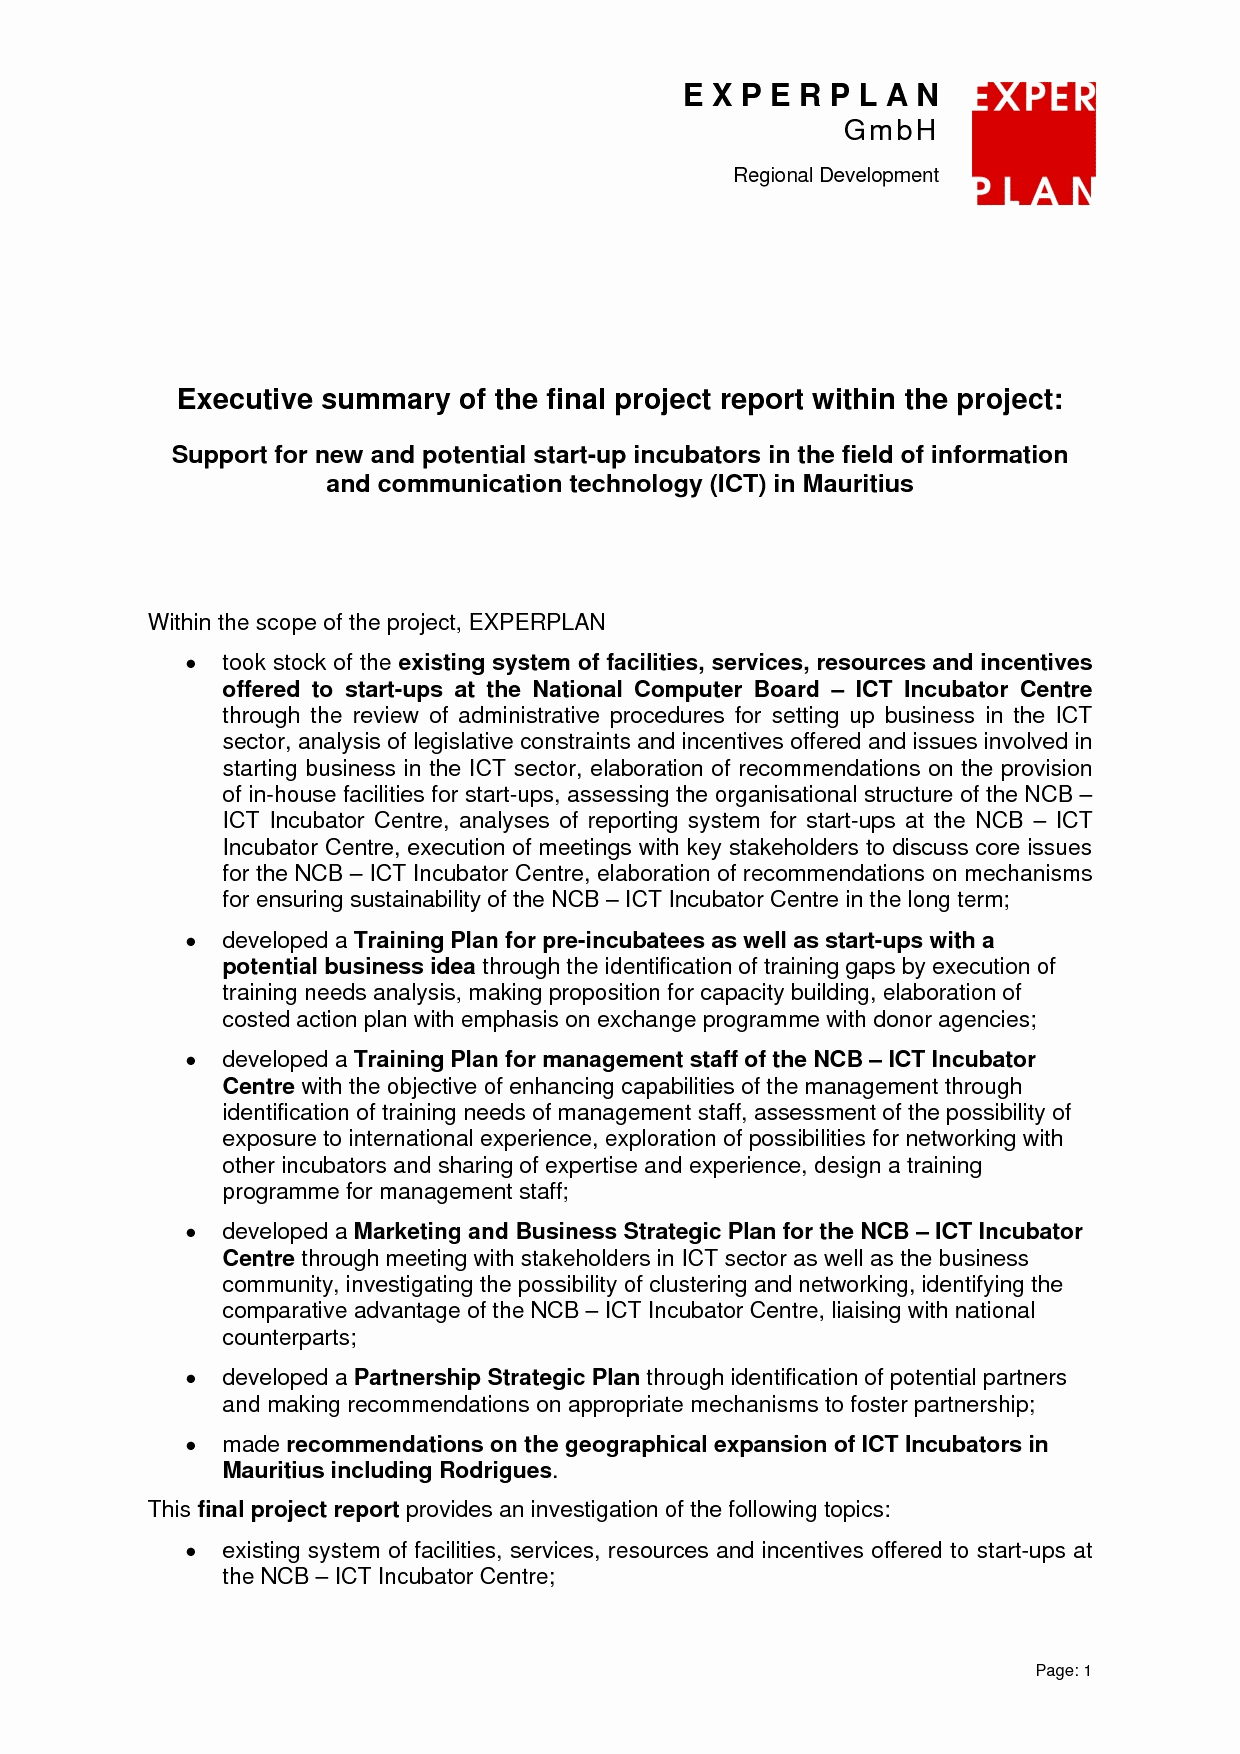 014 Executive Summary Research Paper Example 20project Management Template Plan Luxury Experience Unforgettable Full